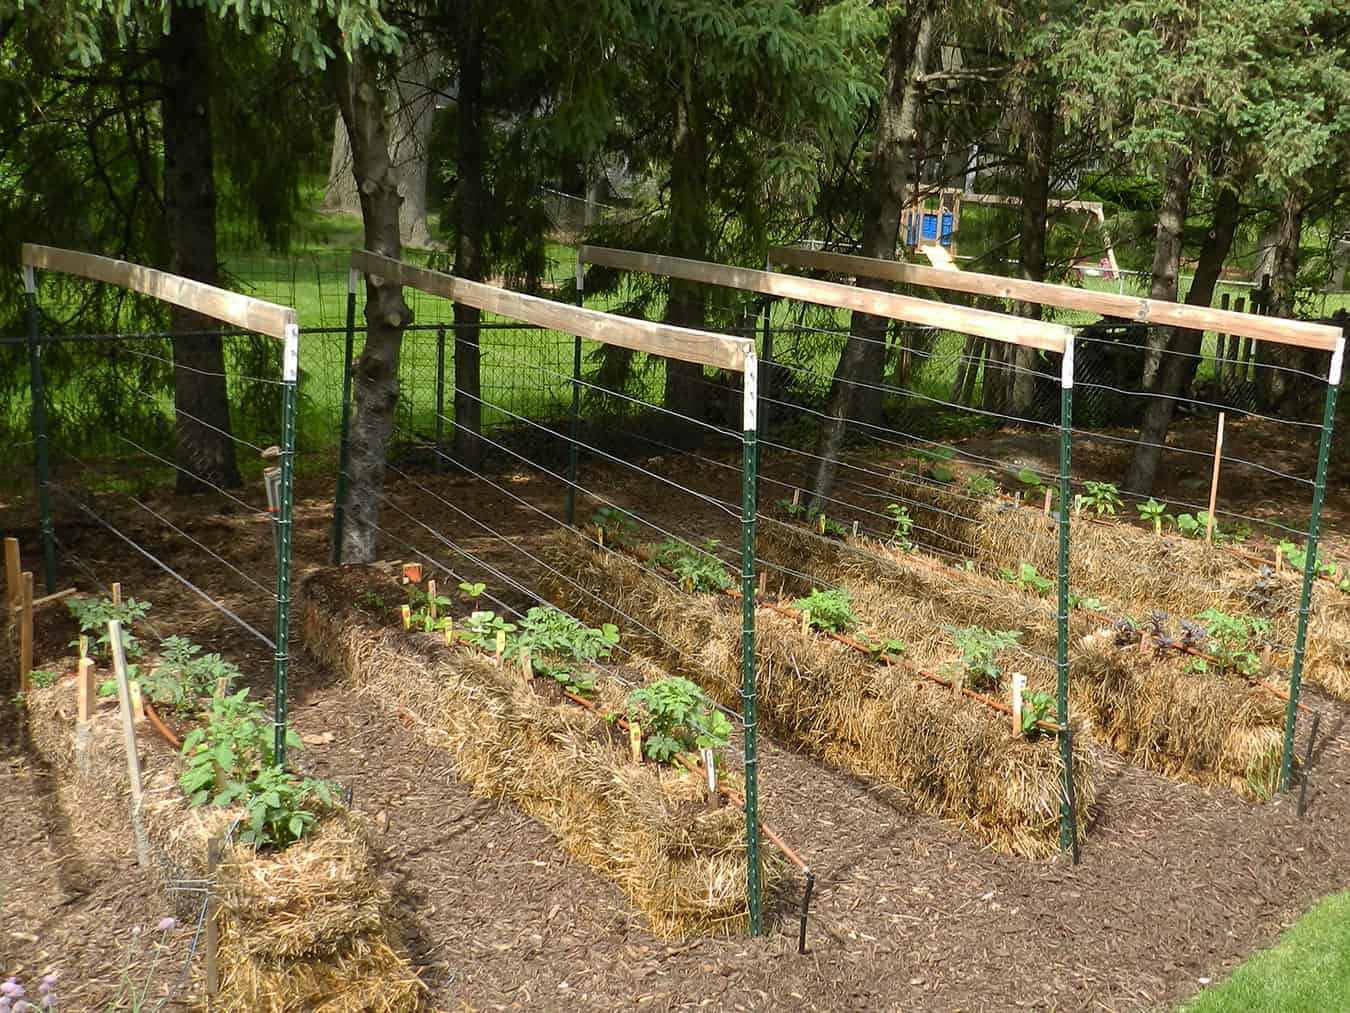 straw bale garden before and after - Straw Bale Gardens